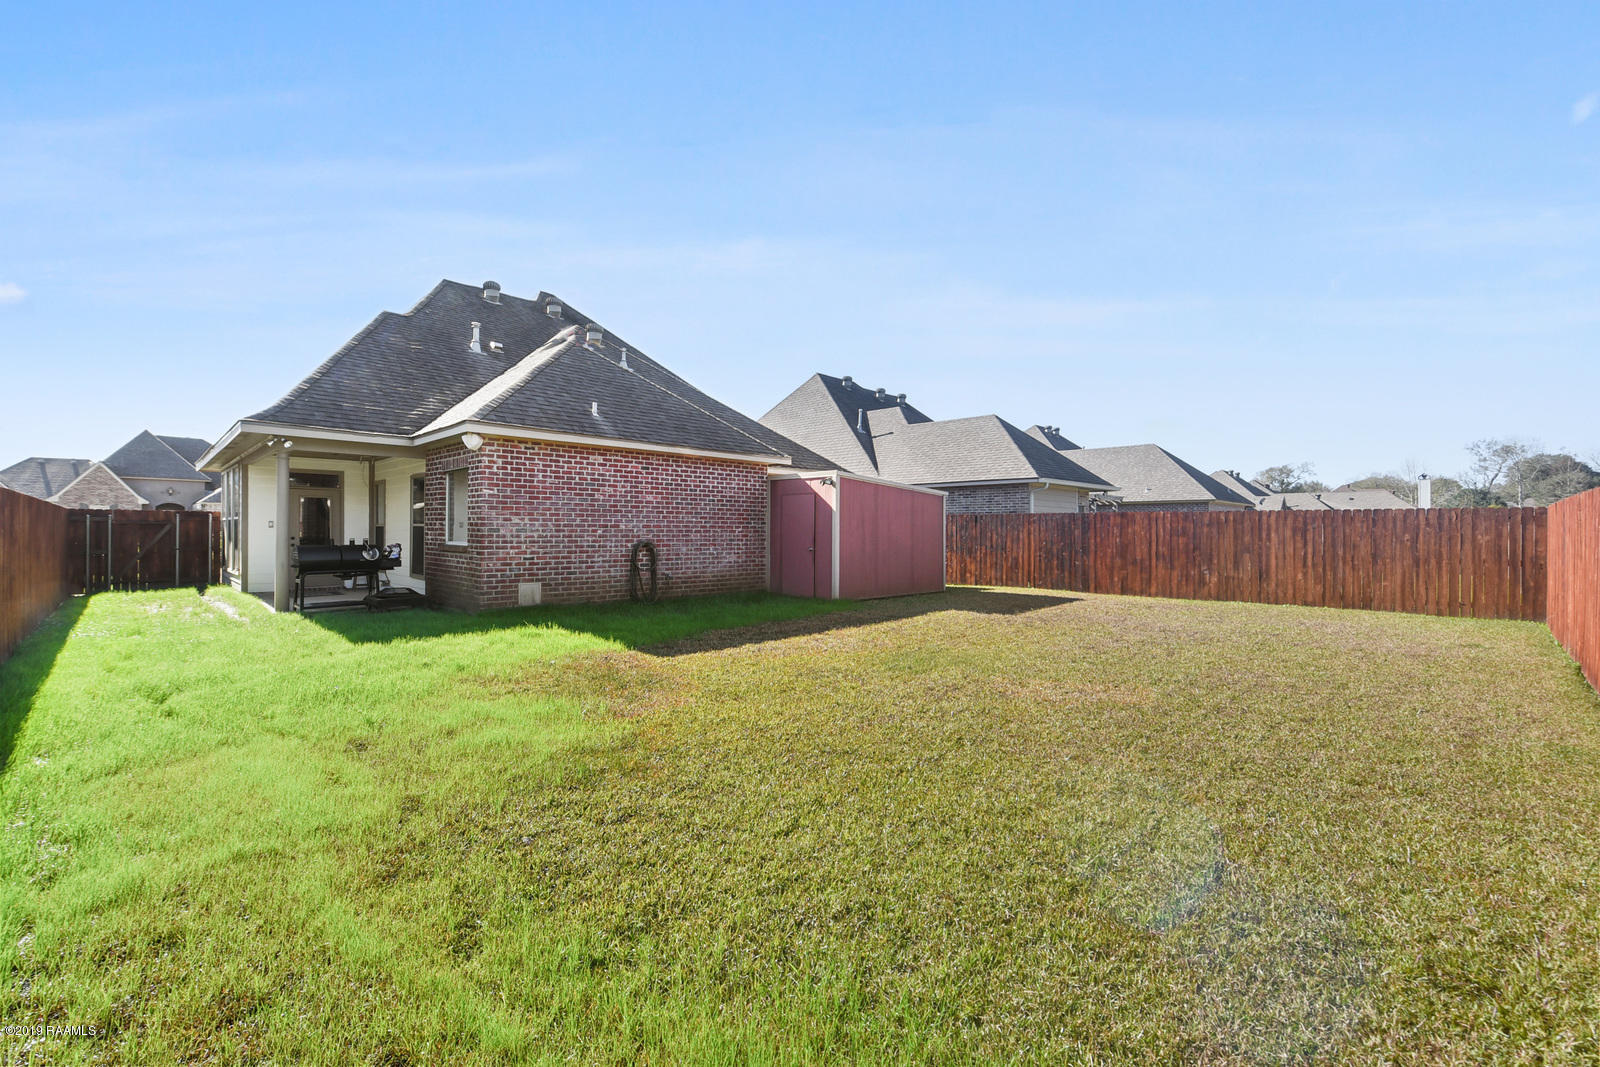 404 Copper Ridge Drive, Youngsville, LA 70592 Photo #17